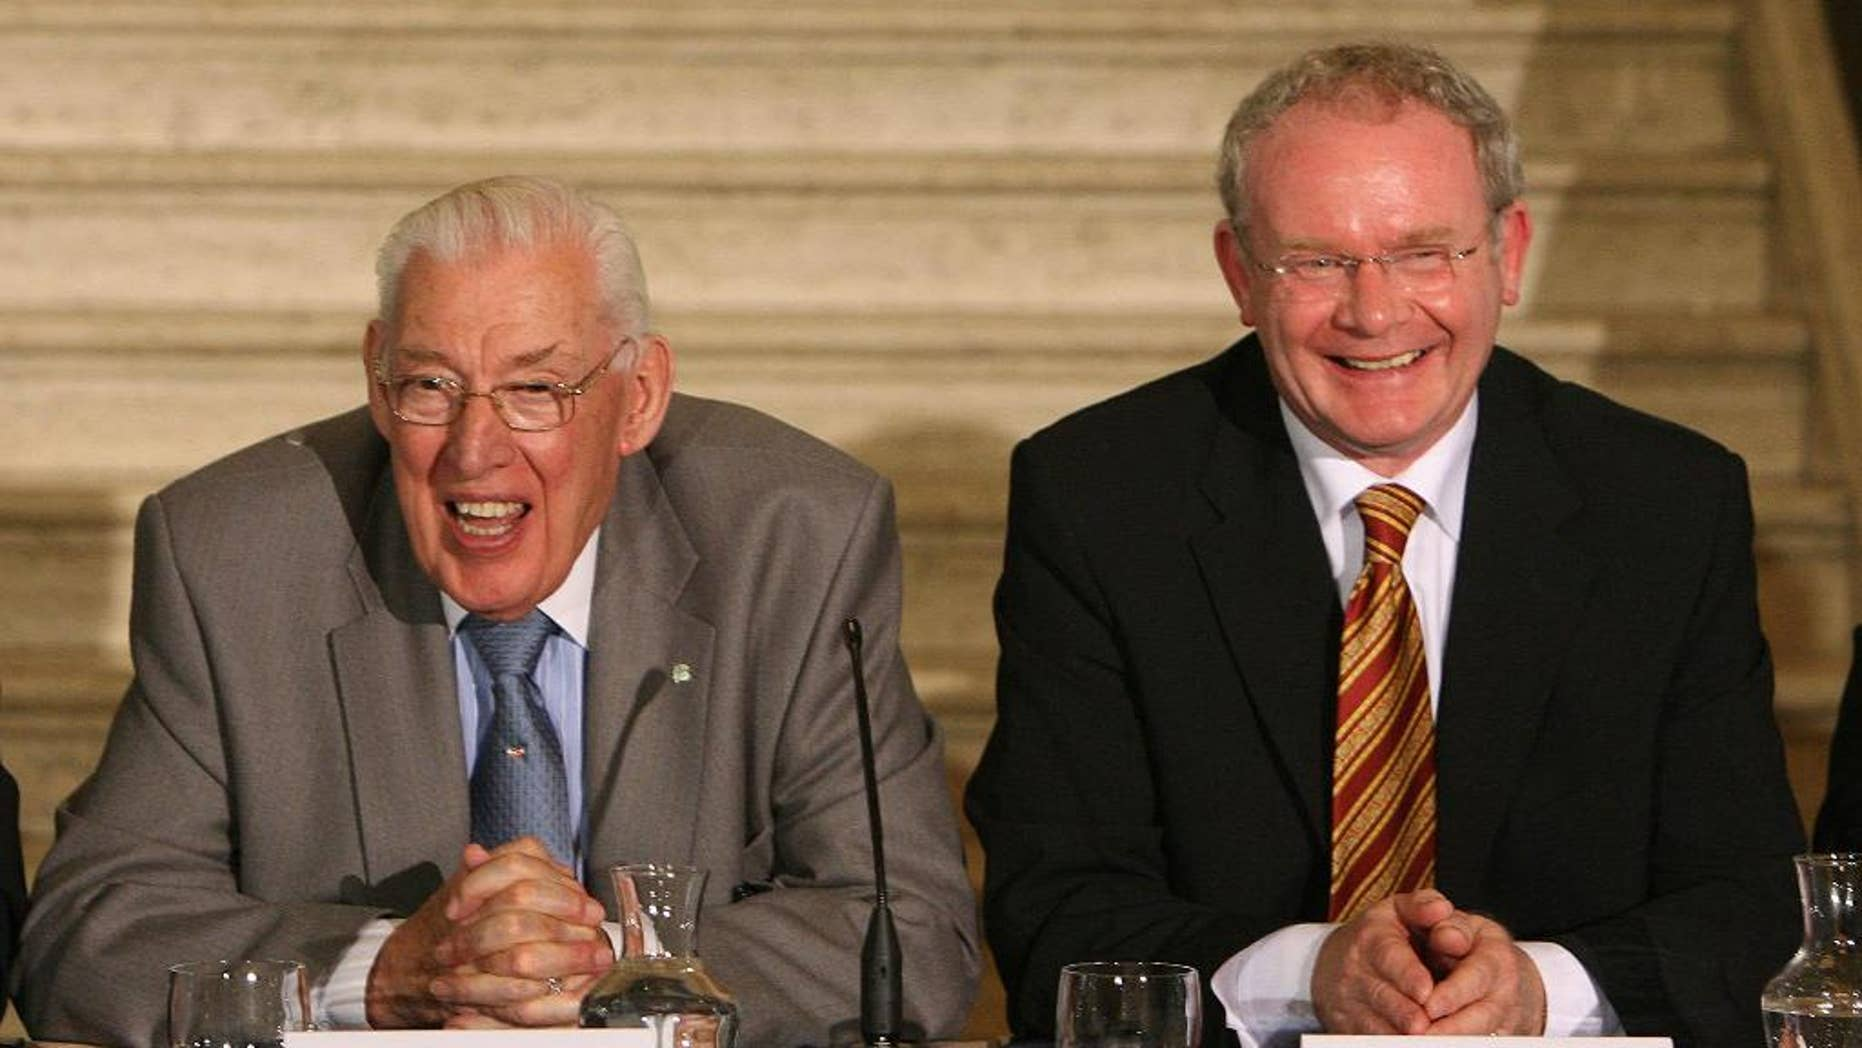 FILE - This is a Monday, July 16, 2007 file photo of Northern Ireland First Minister, Dr Ian Paisley, left, and Northern Ireland Deputy First Minister, Martin McGuinness, as they speak to the media  at Parliament Buildings, Stormont, Belfast, Northern Ireland.  Ian Paisley frequently divided Northern Ireland in life. But a memorial to the Protestant evangelist who made peace late in life with Catholics has united the British territory's leaders. Leading figures from across Britain and Ireland came together Sunday  Oct. 19, 2014 at the Ulster Hall in Belfast to eulogize Paisley, who died last month at age 88.  (AP Photo/Paul Faith, Pool)